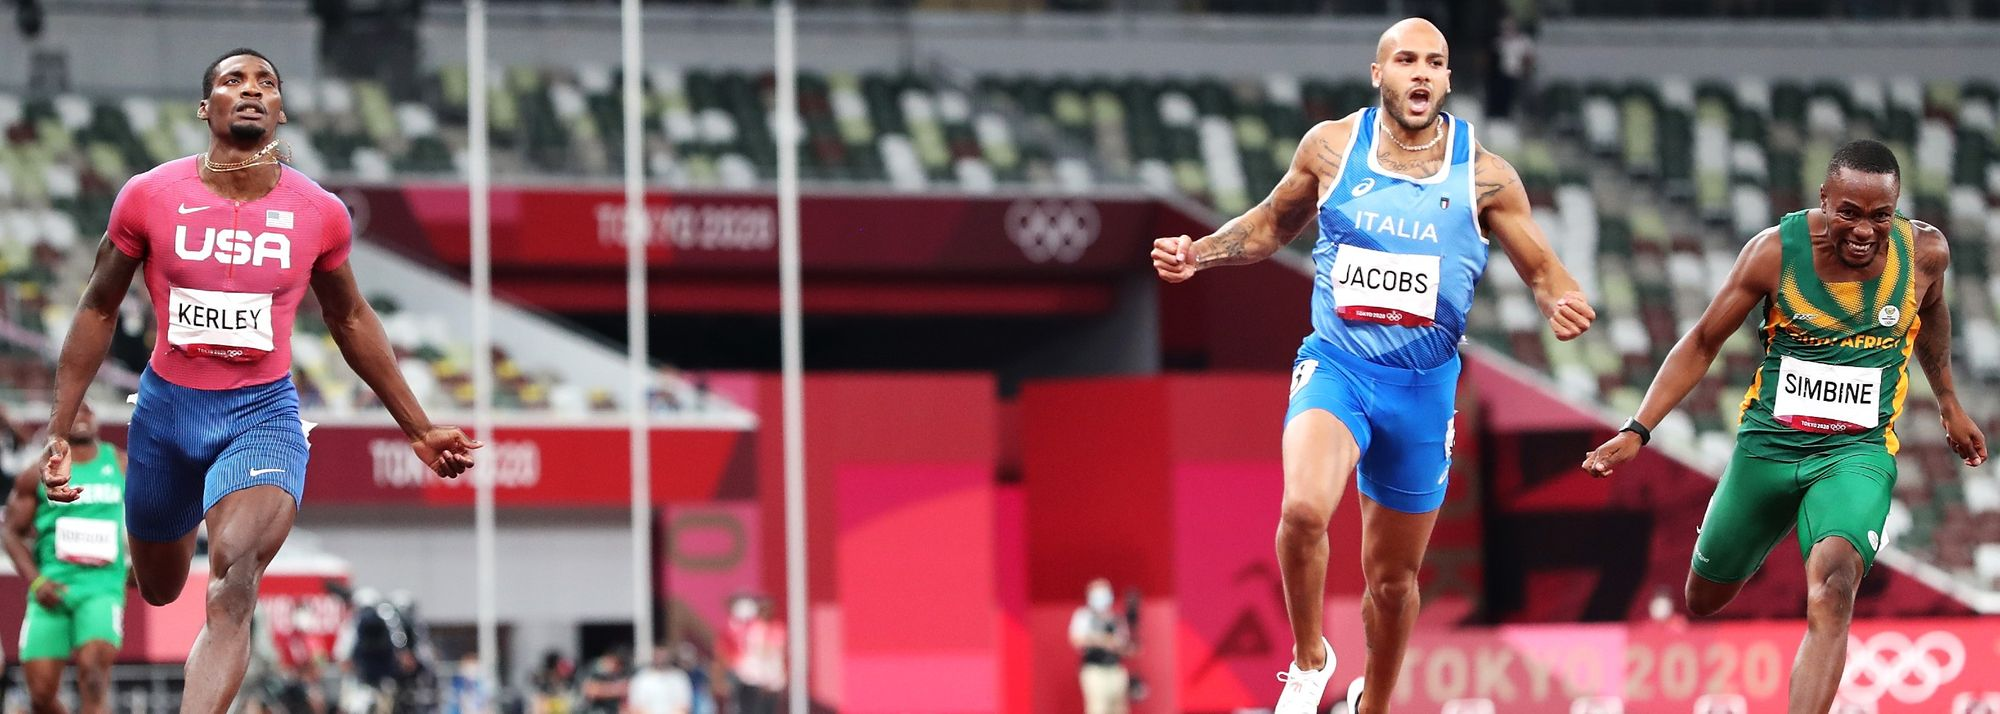 The Italian former long jumper claimed the first men's 100m gold medal of the post-Usain Bolt era.